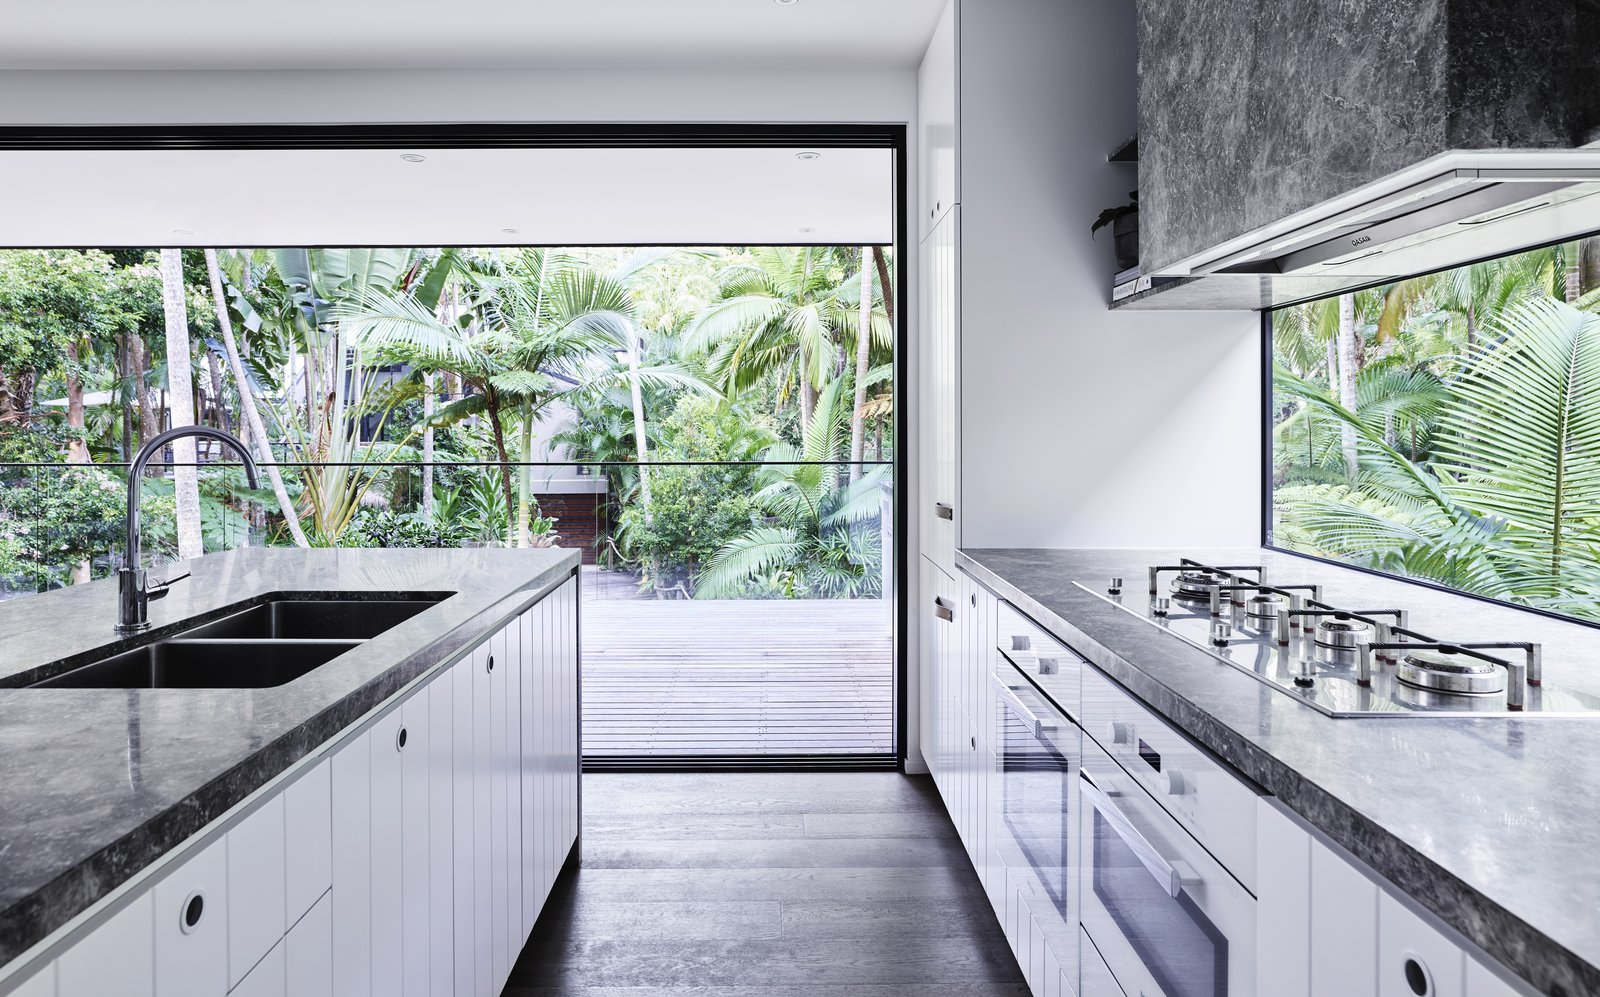 Kitchen, Cooktops, Wall Oven, Recessed Lighting, White Cabinet, Light Hardwood Floor, and Undermount Sink A spacious balcony has been added to the residence.  Photo 7 of 17 in Reconnect With Nature at This Revamped Rainforest Retreat